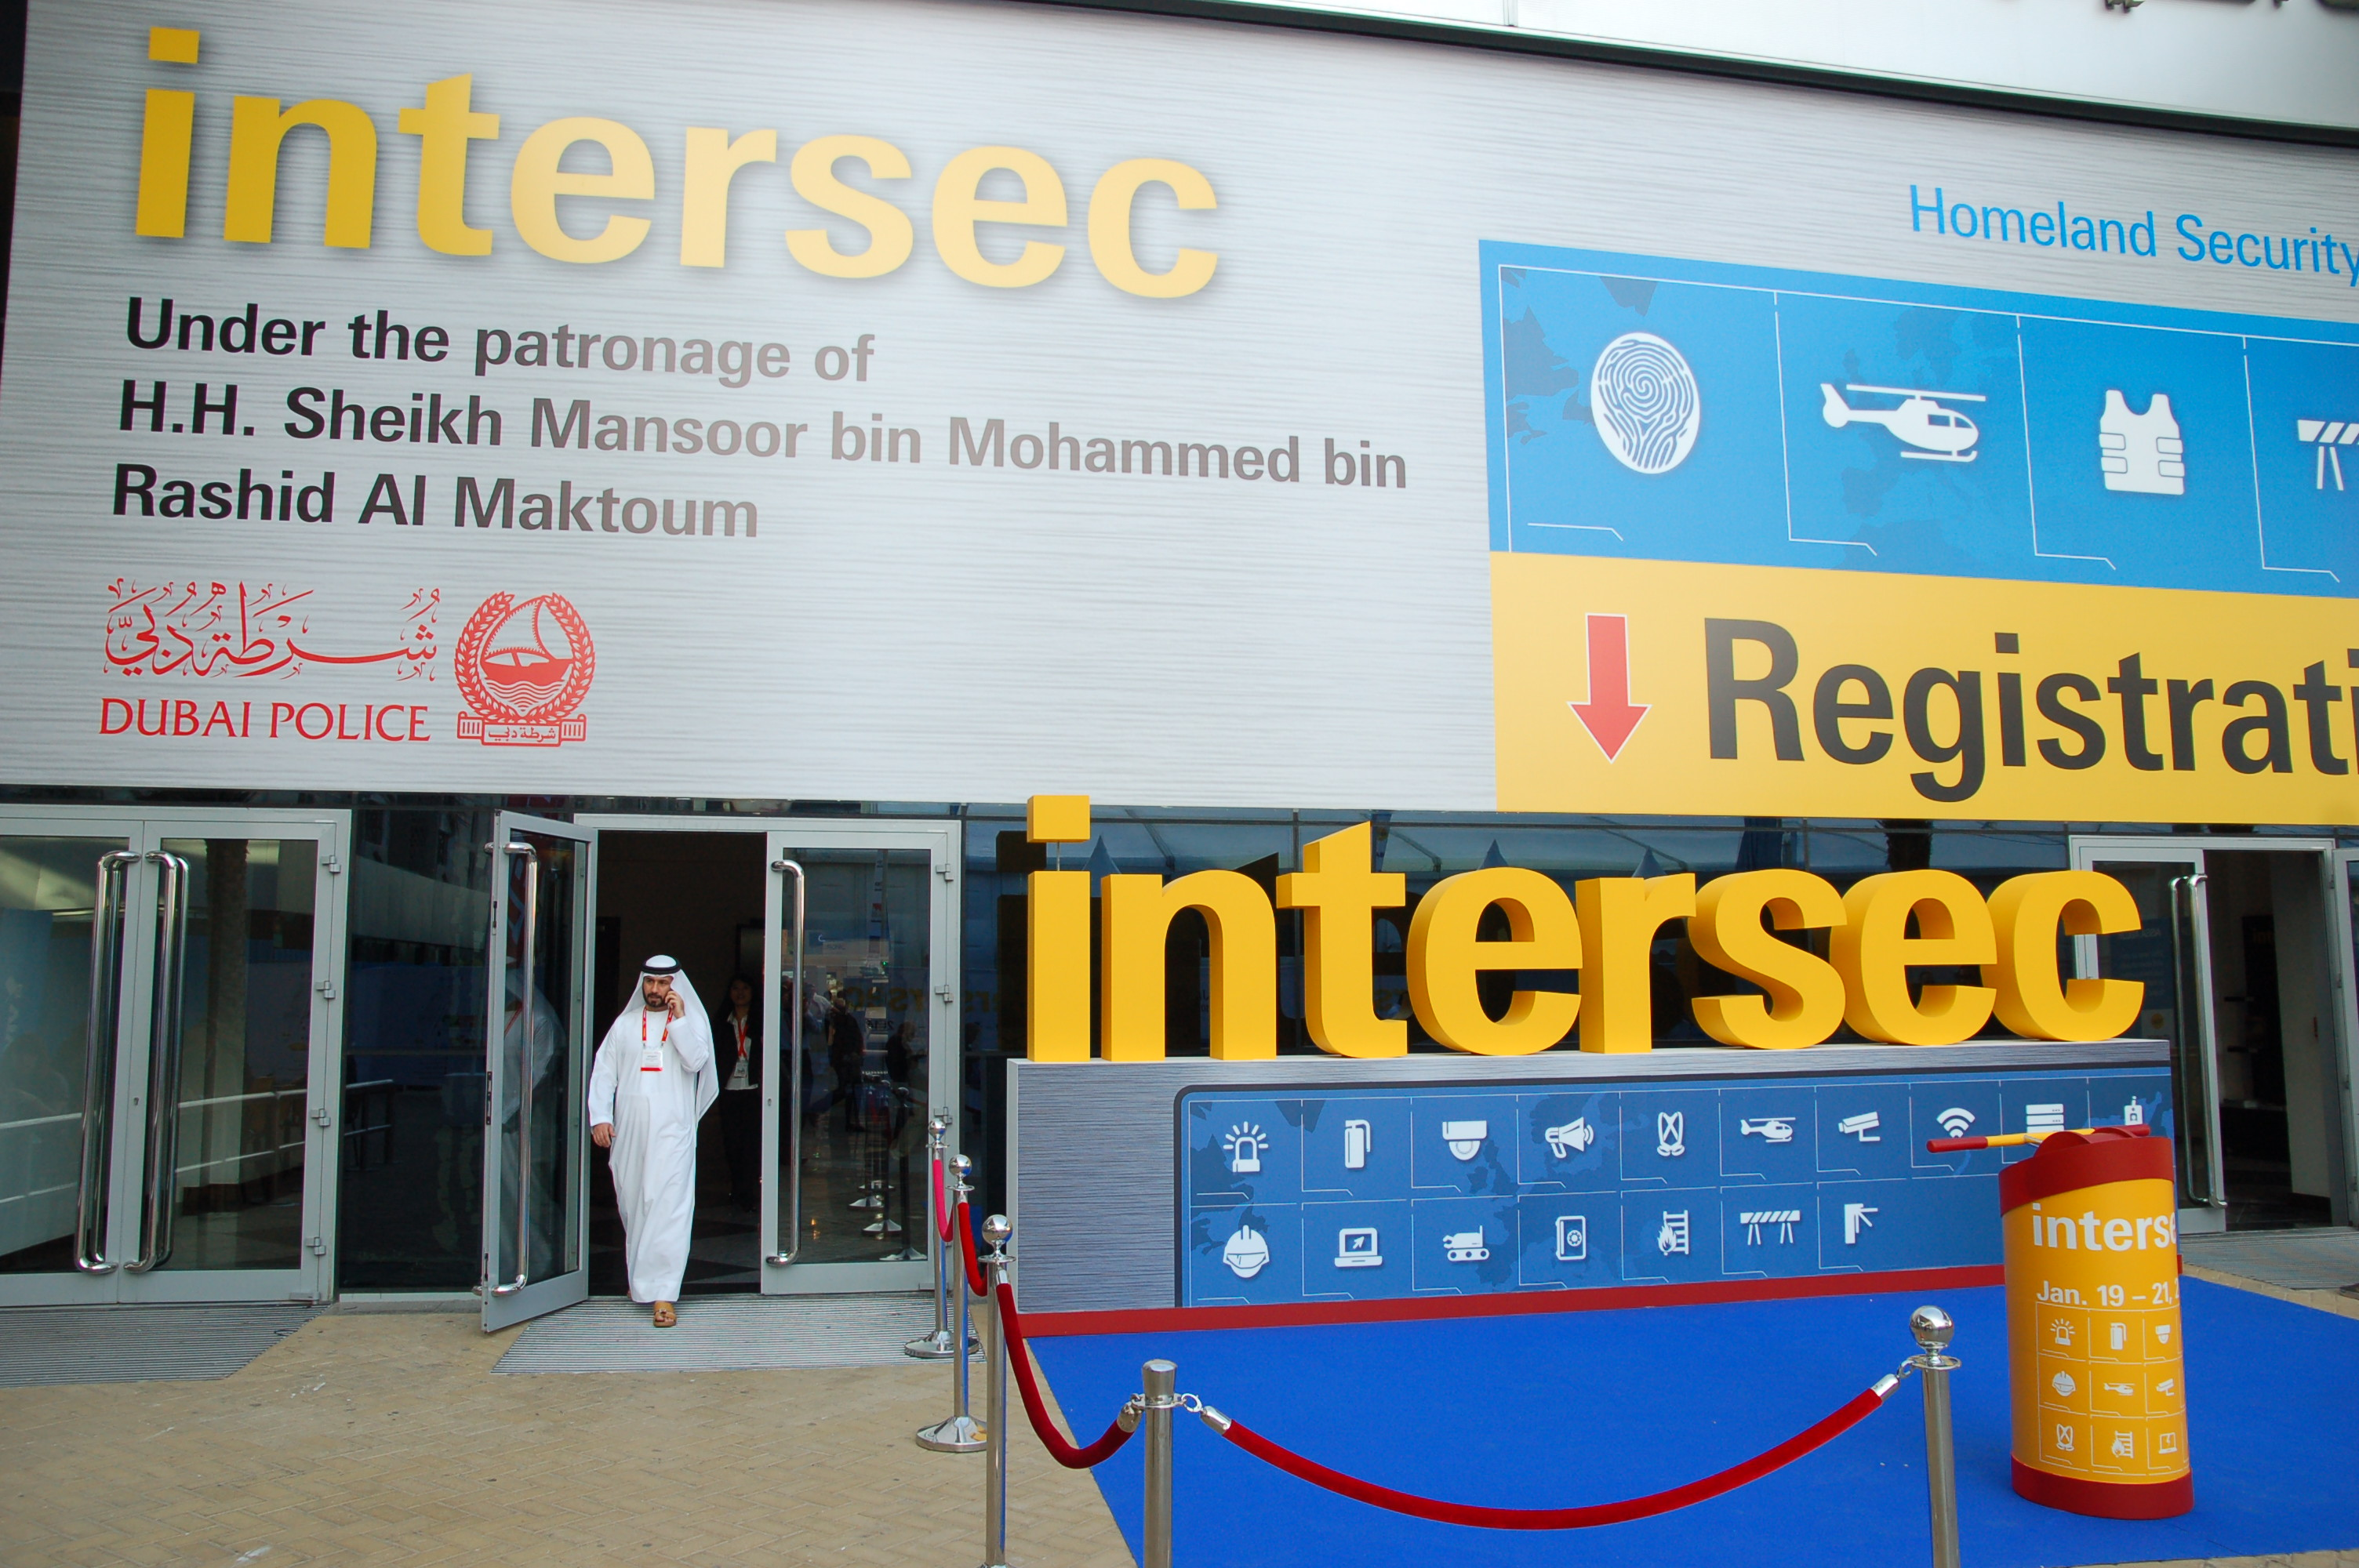 DIGITEX at Intersec 2014 in Dubai